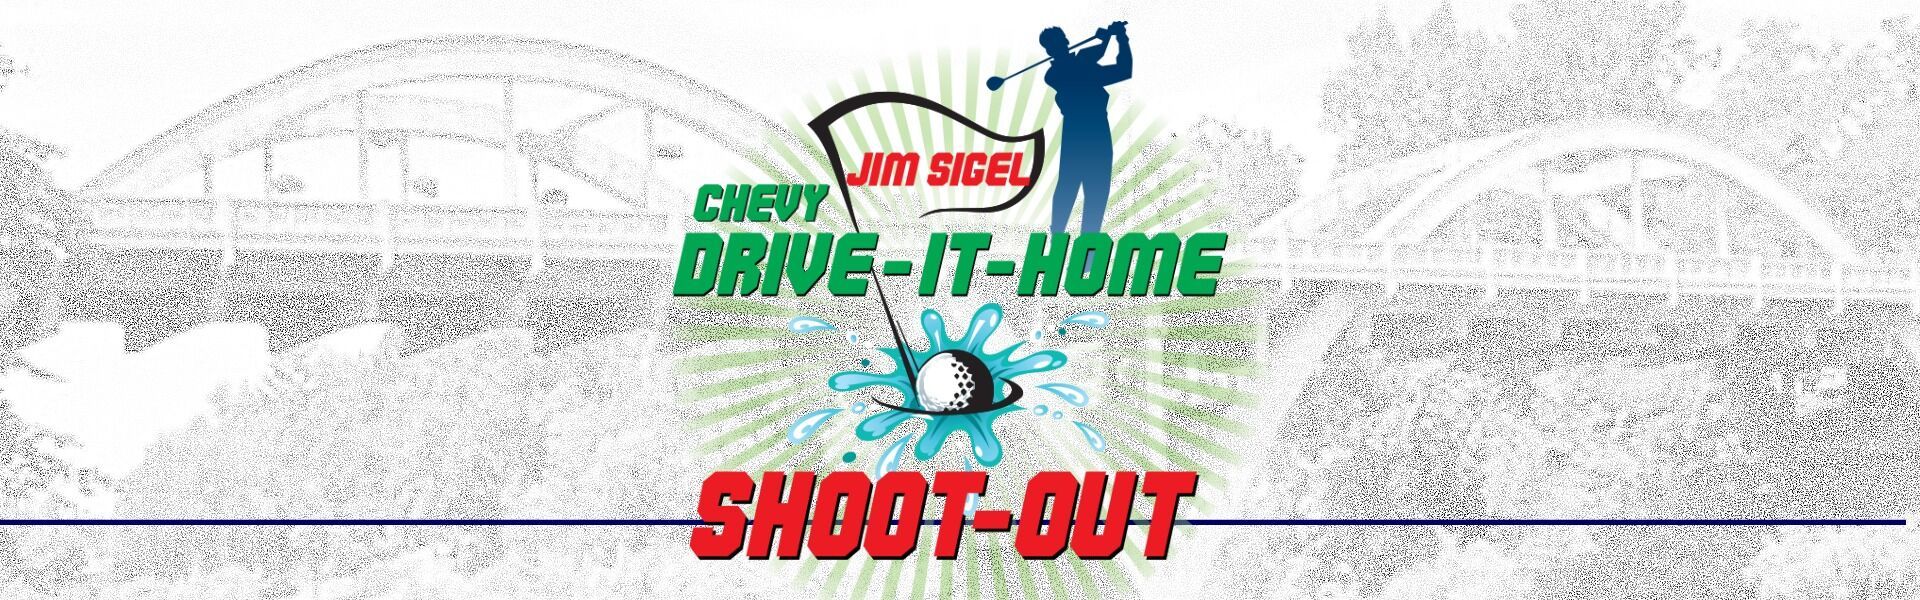 Jim Sigel Drive it Home Shootout